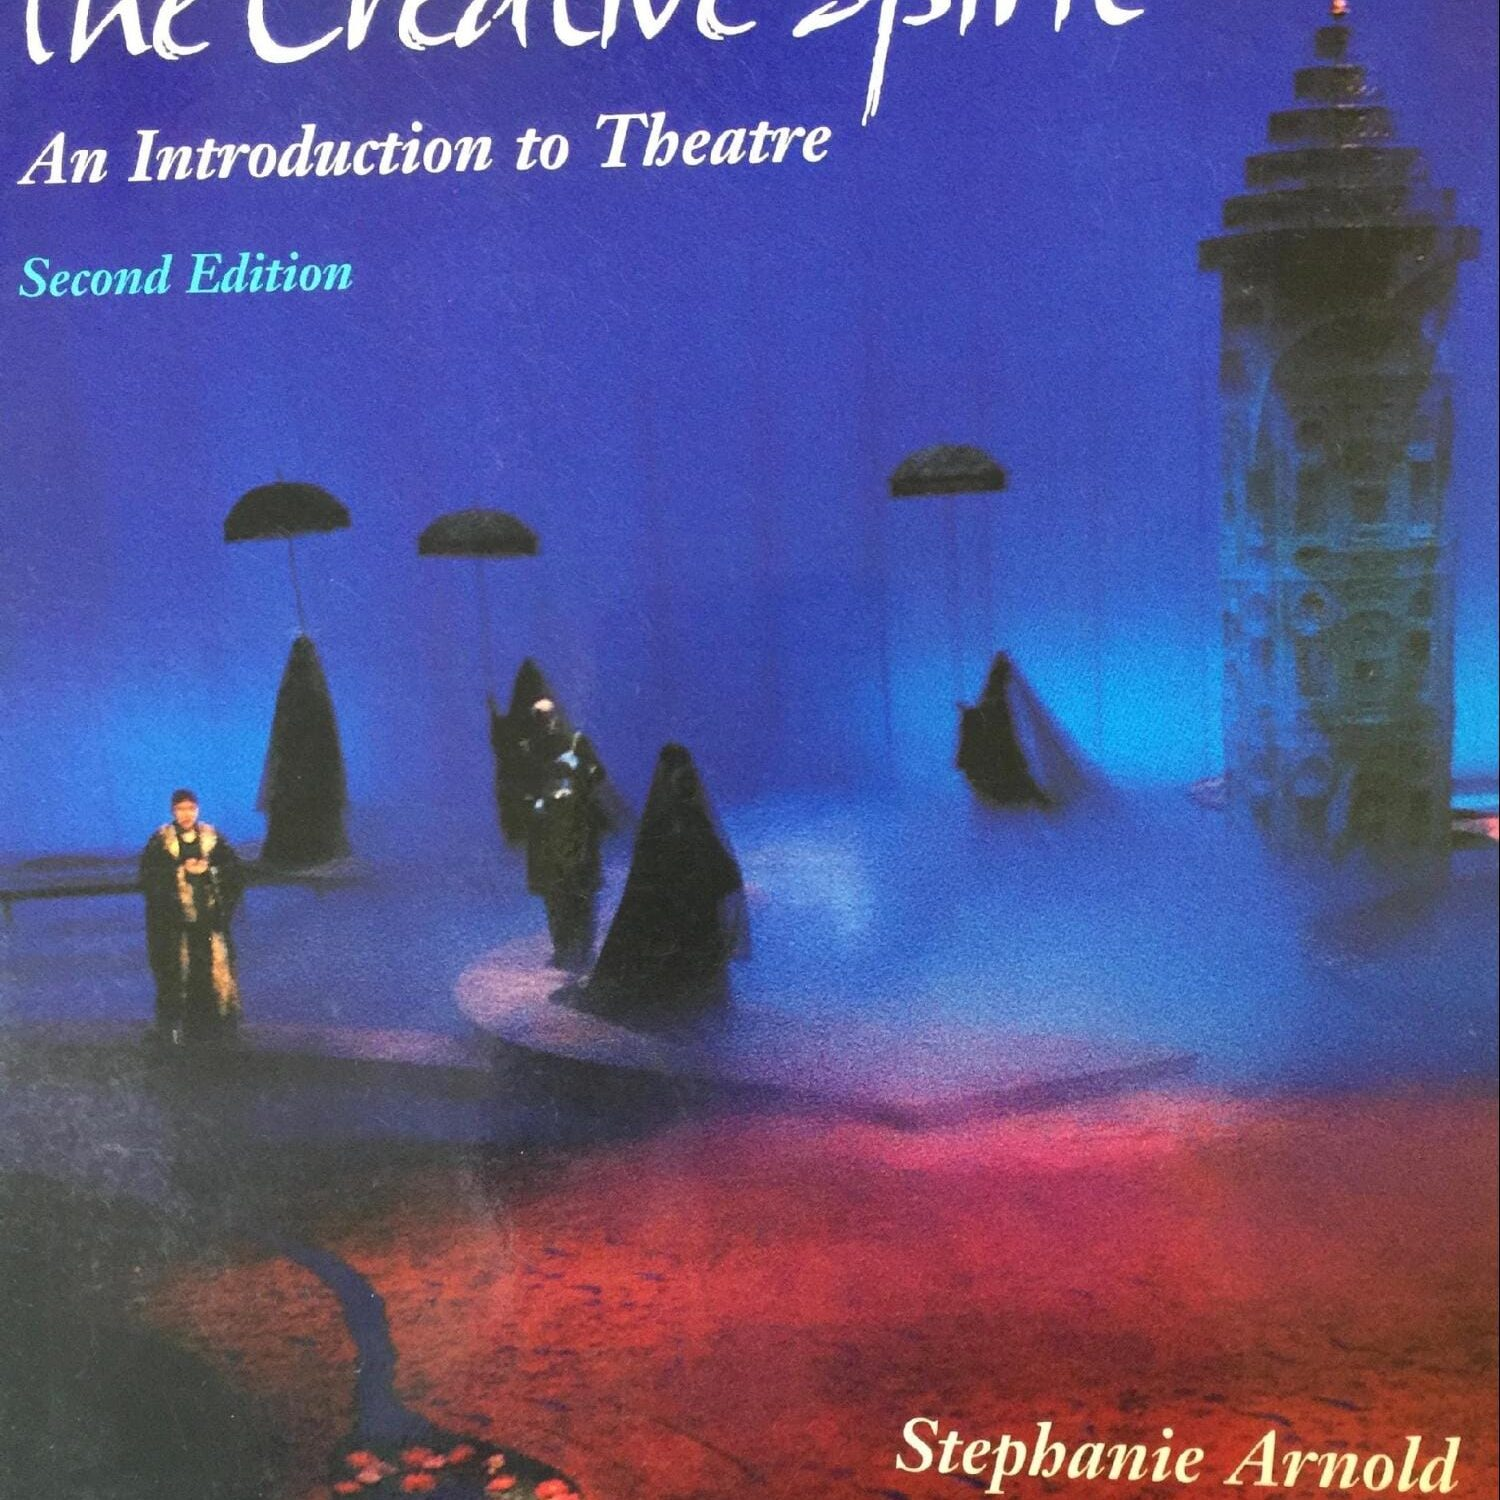 Editorial consultant, Mayfield Publications' The Creative Spirit: (Stephanie Arnold) Second Edition, 1999